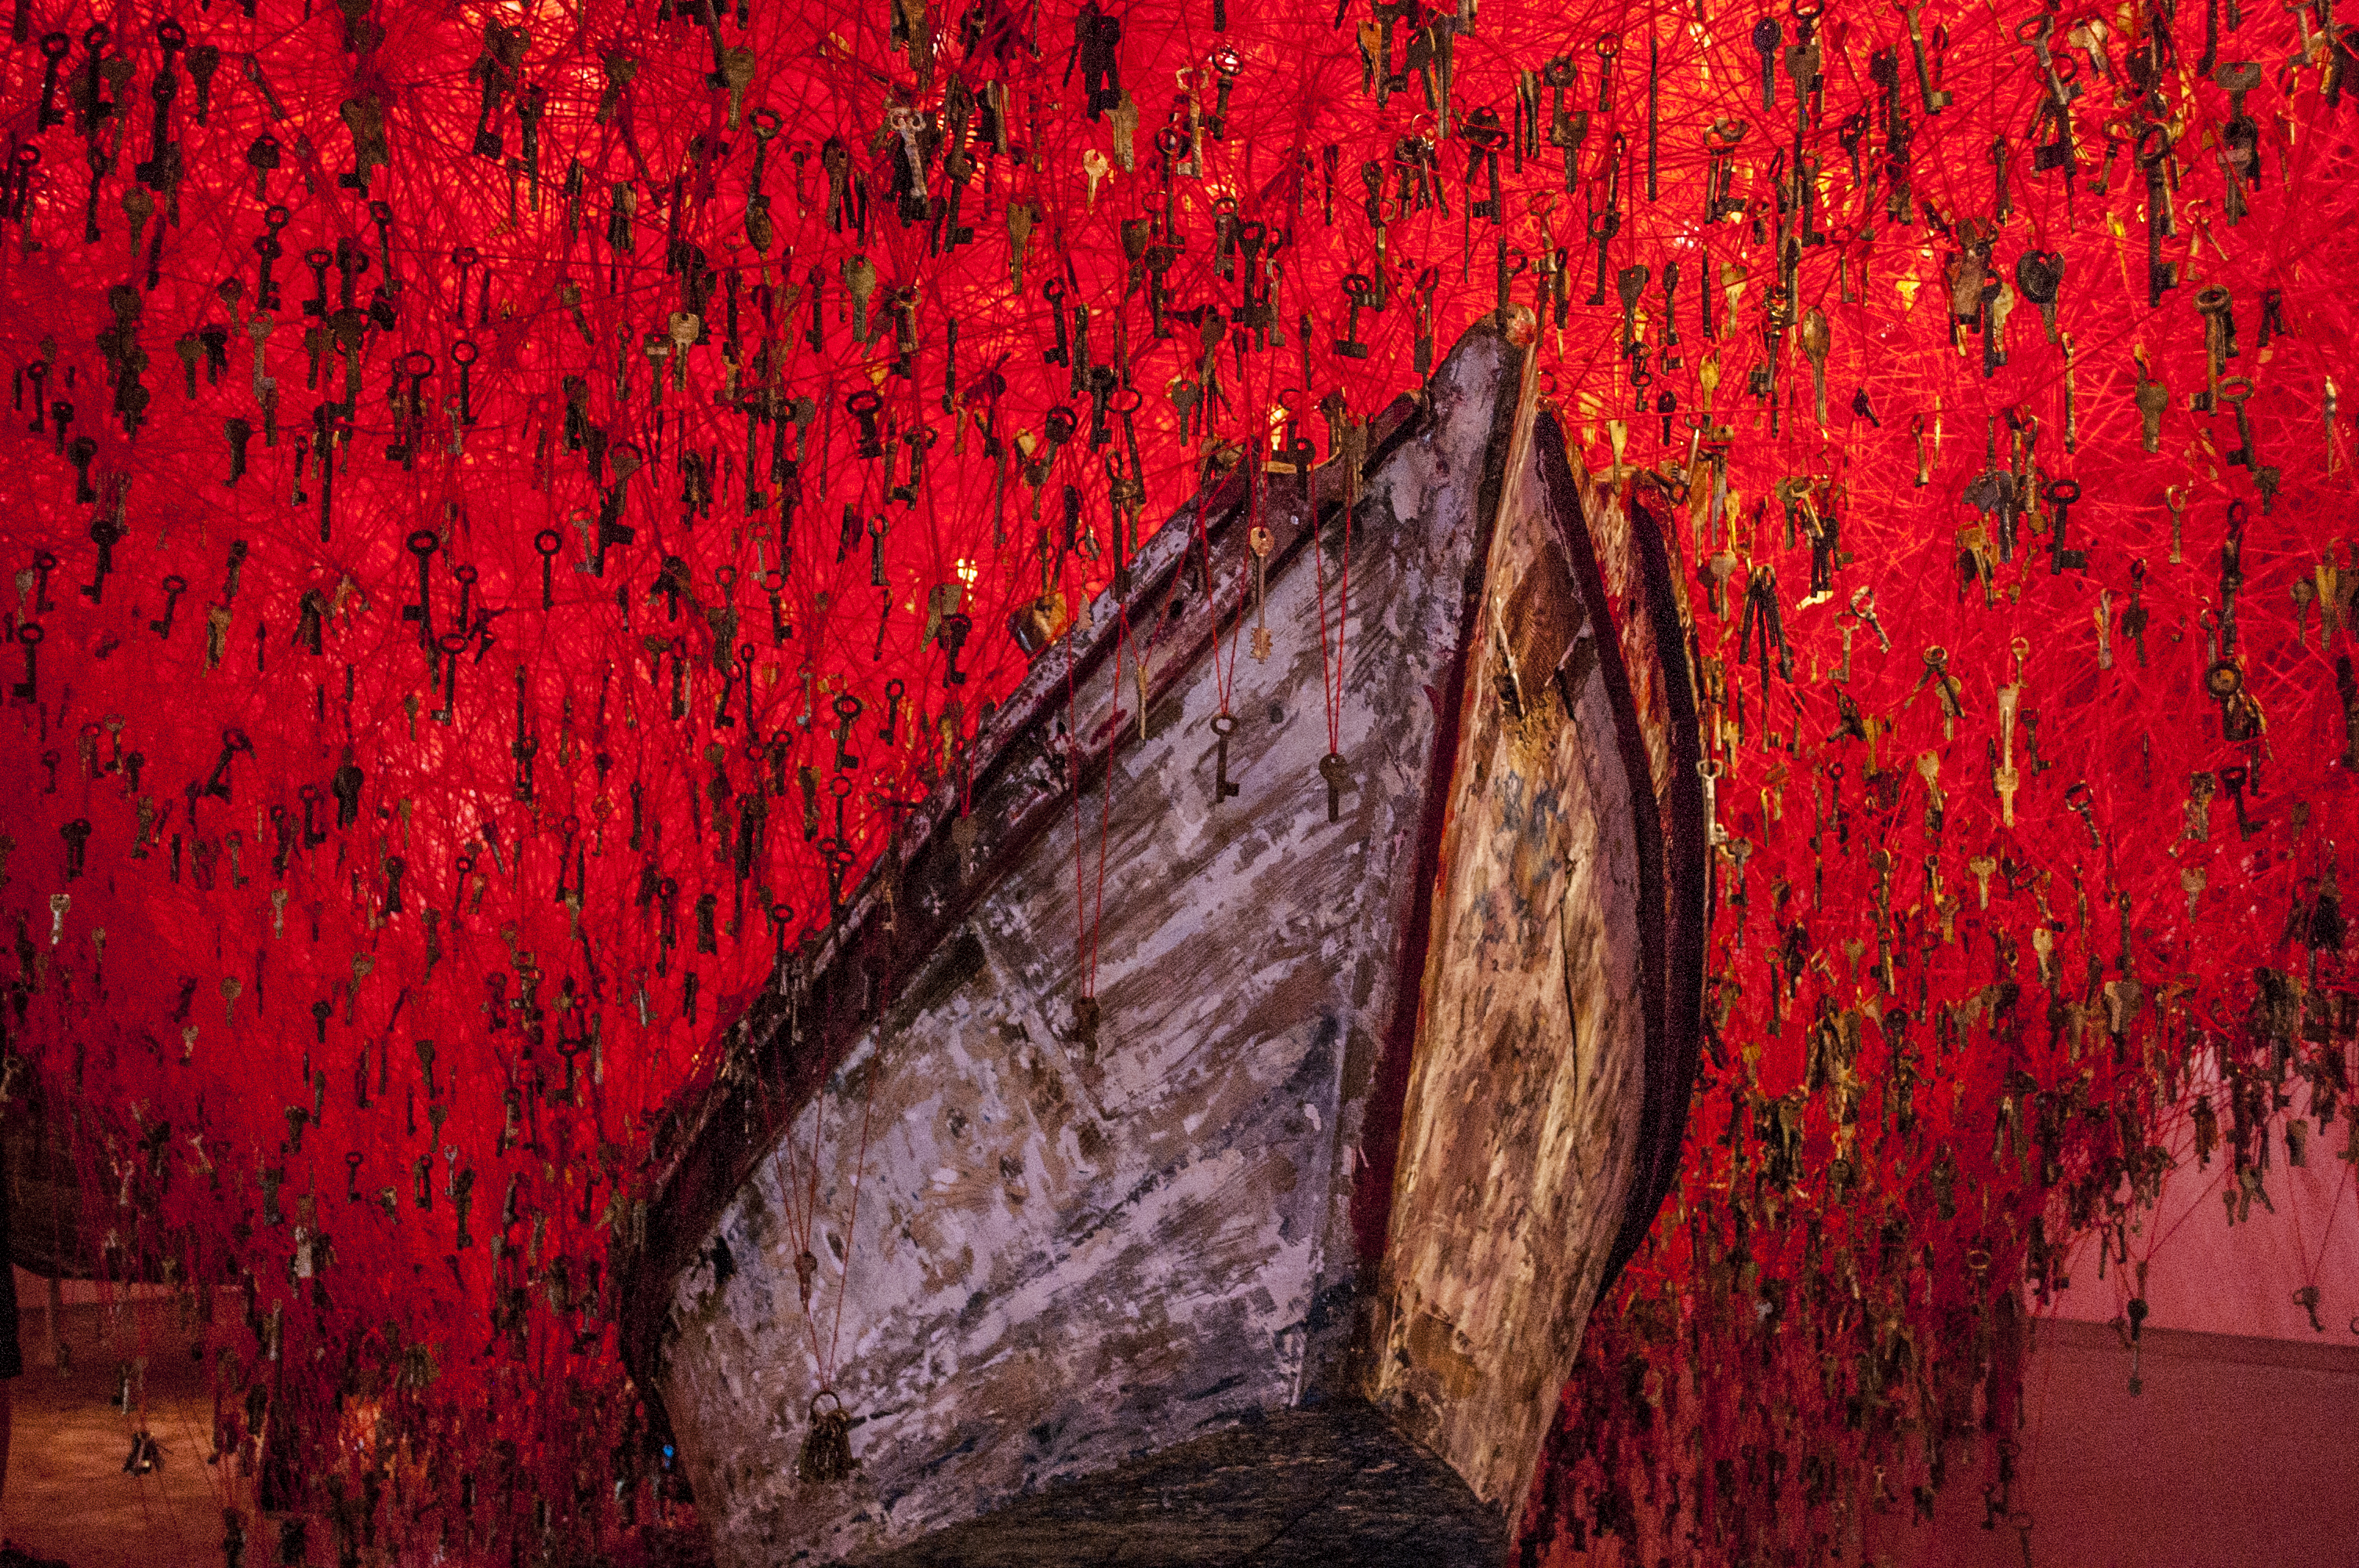 Chiharu Shiota En La 56 Bienal De Venecia The Key In The